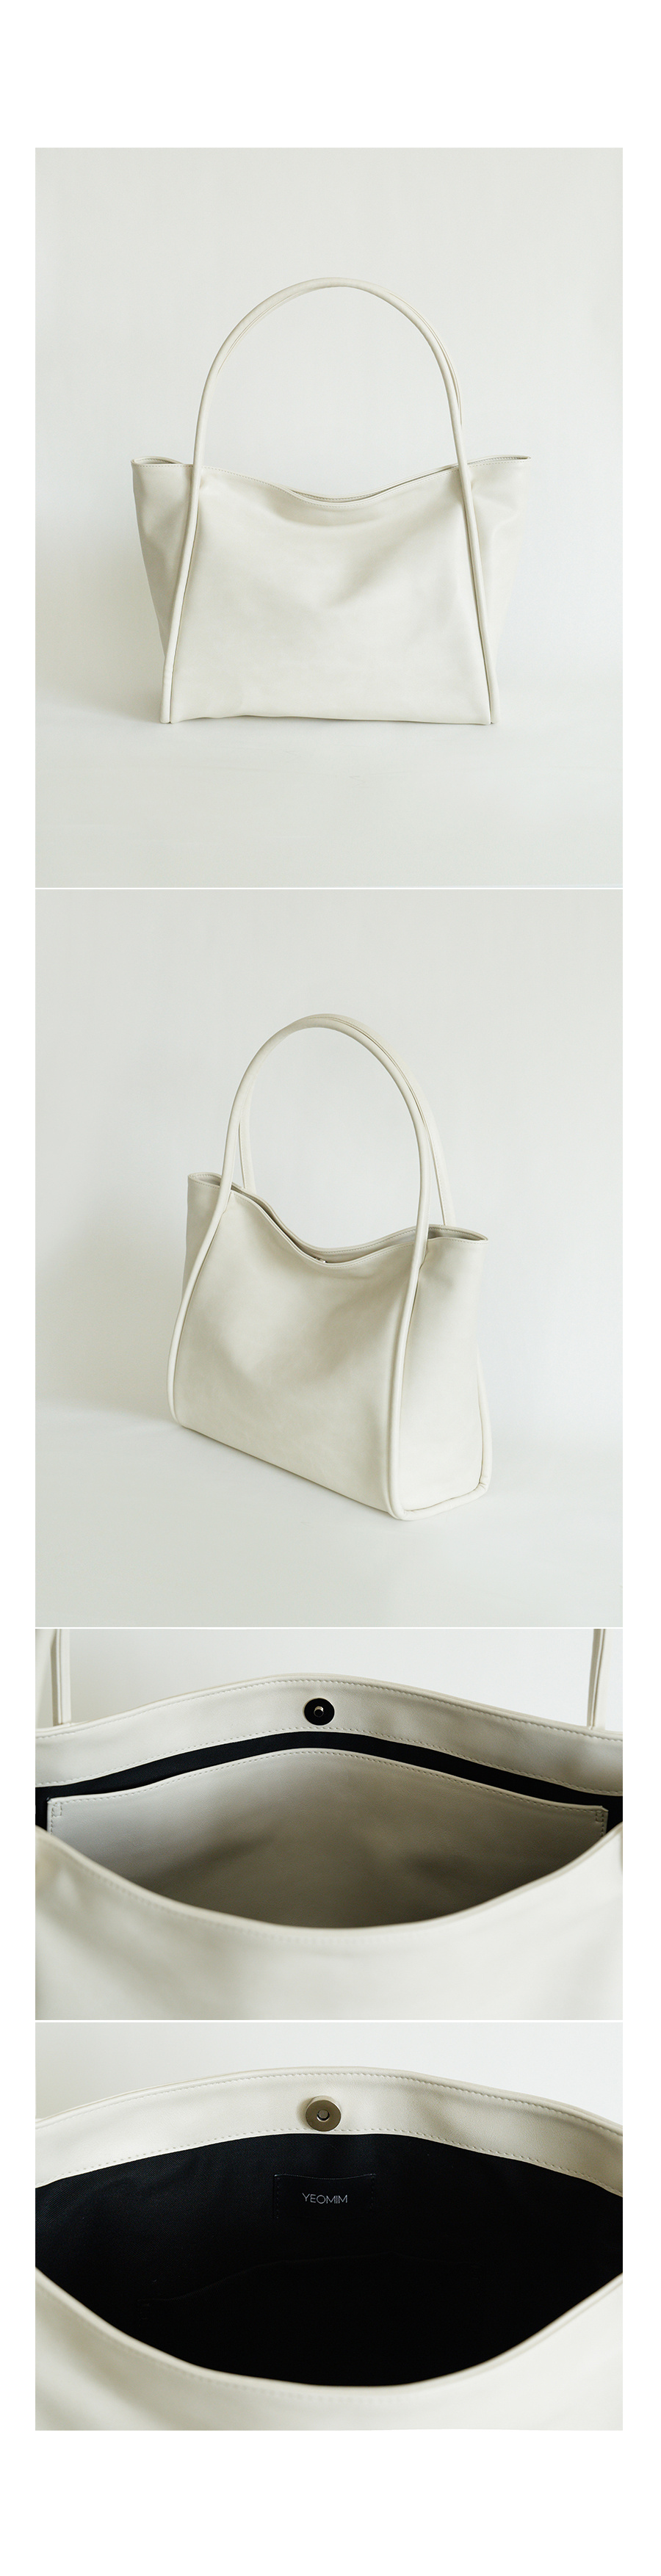 여밈(YEOMIM) dapper bag (cream)